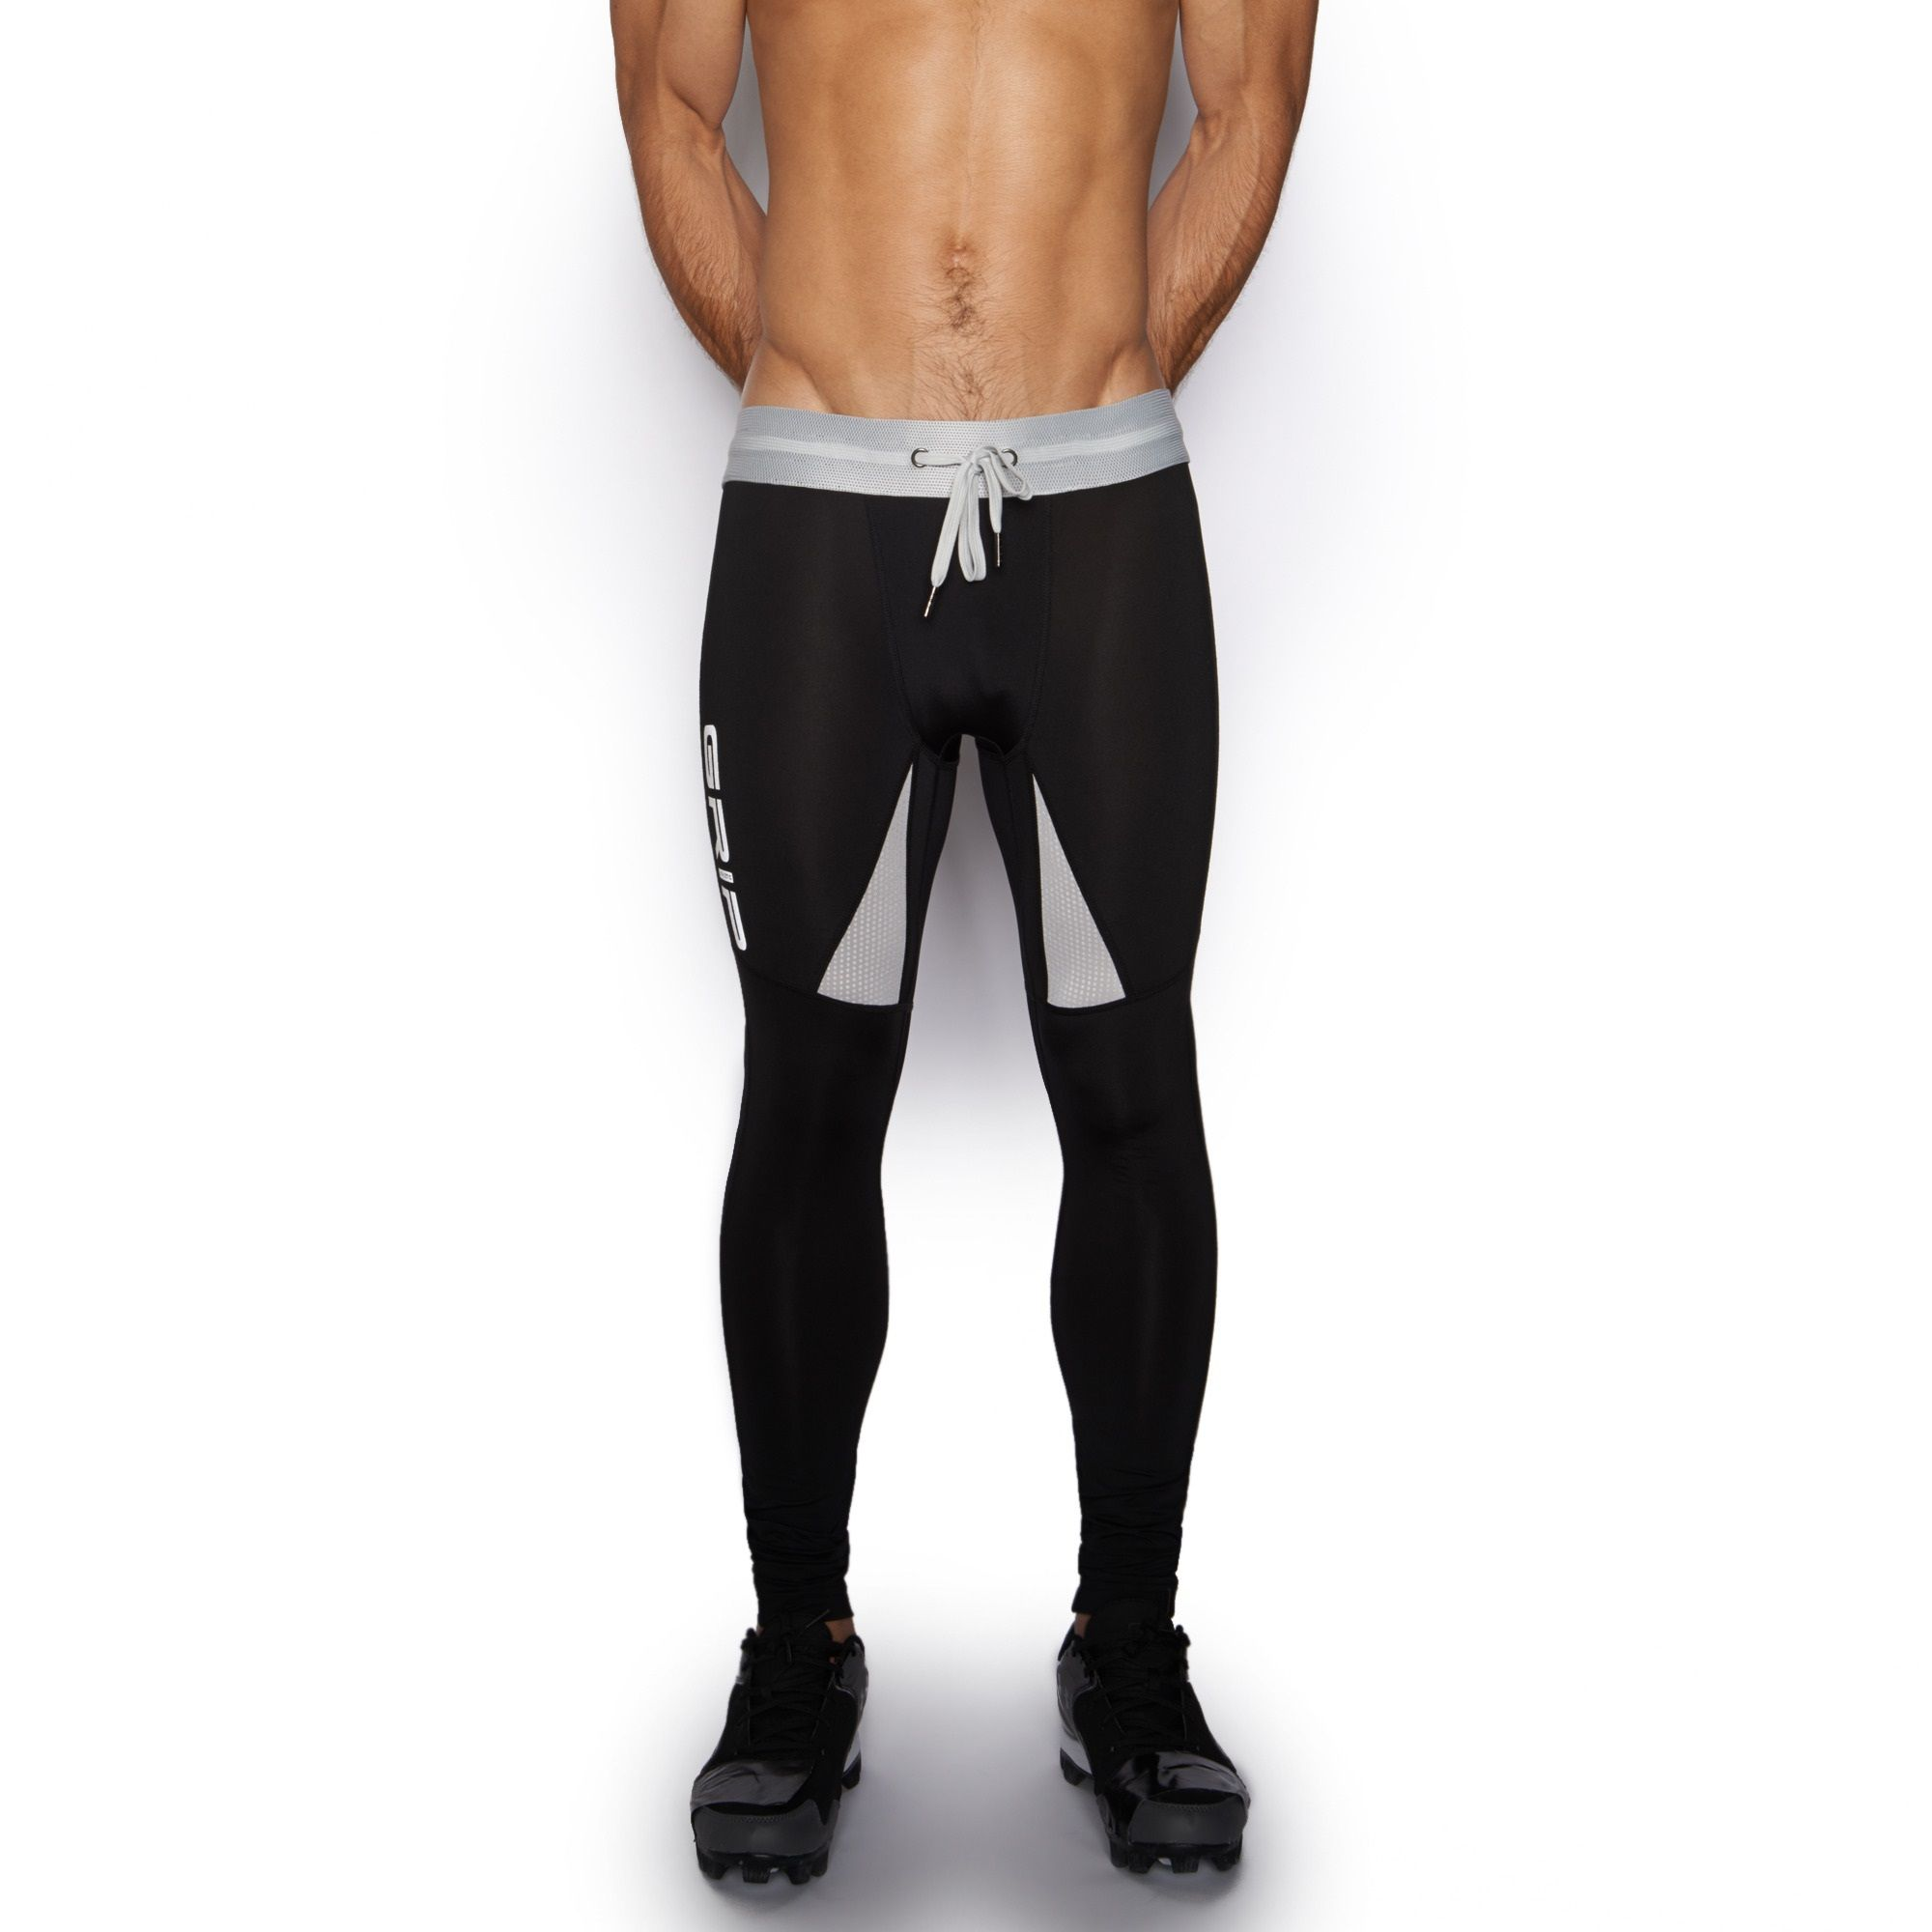 Grip Athletic is versatile high performance activewear for